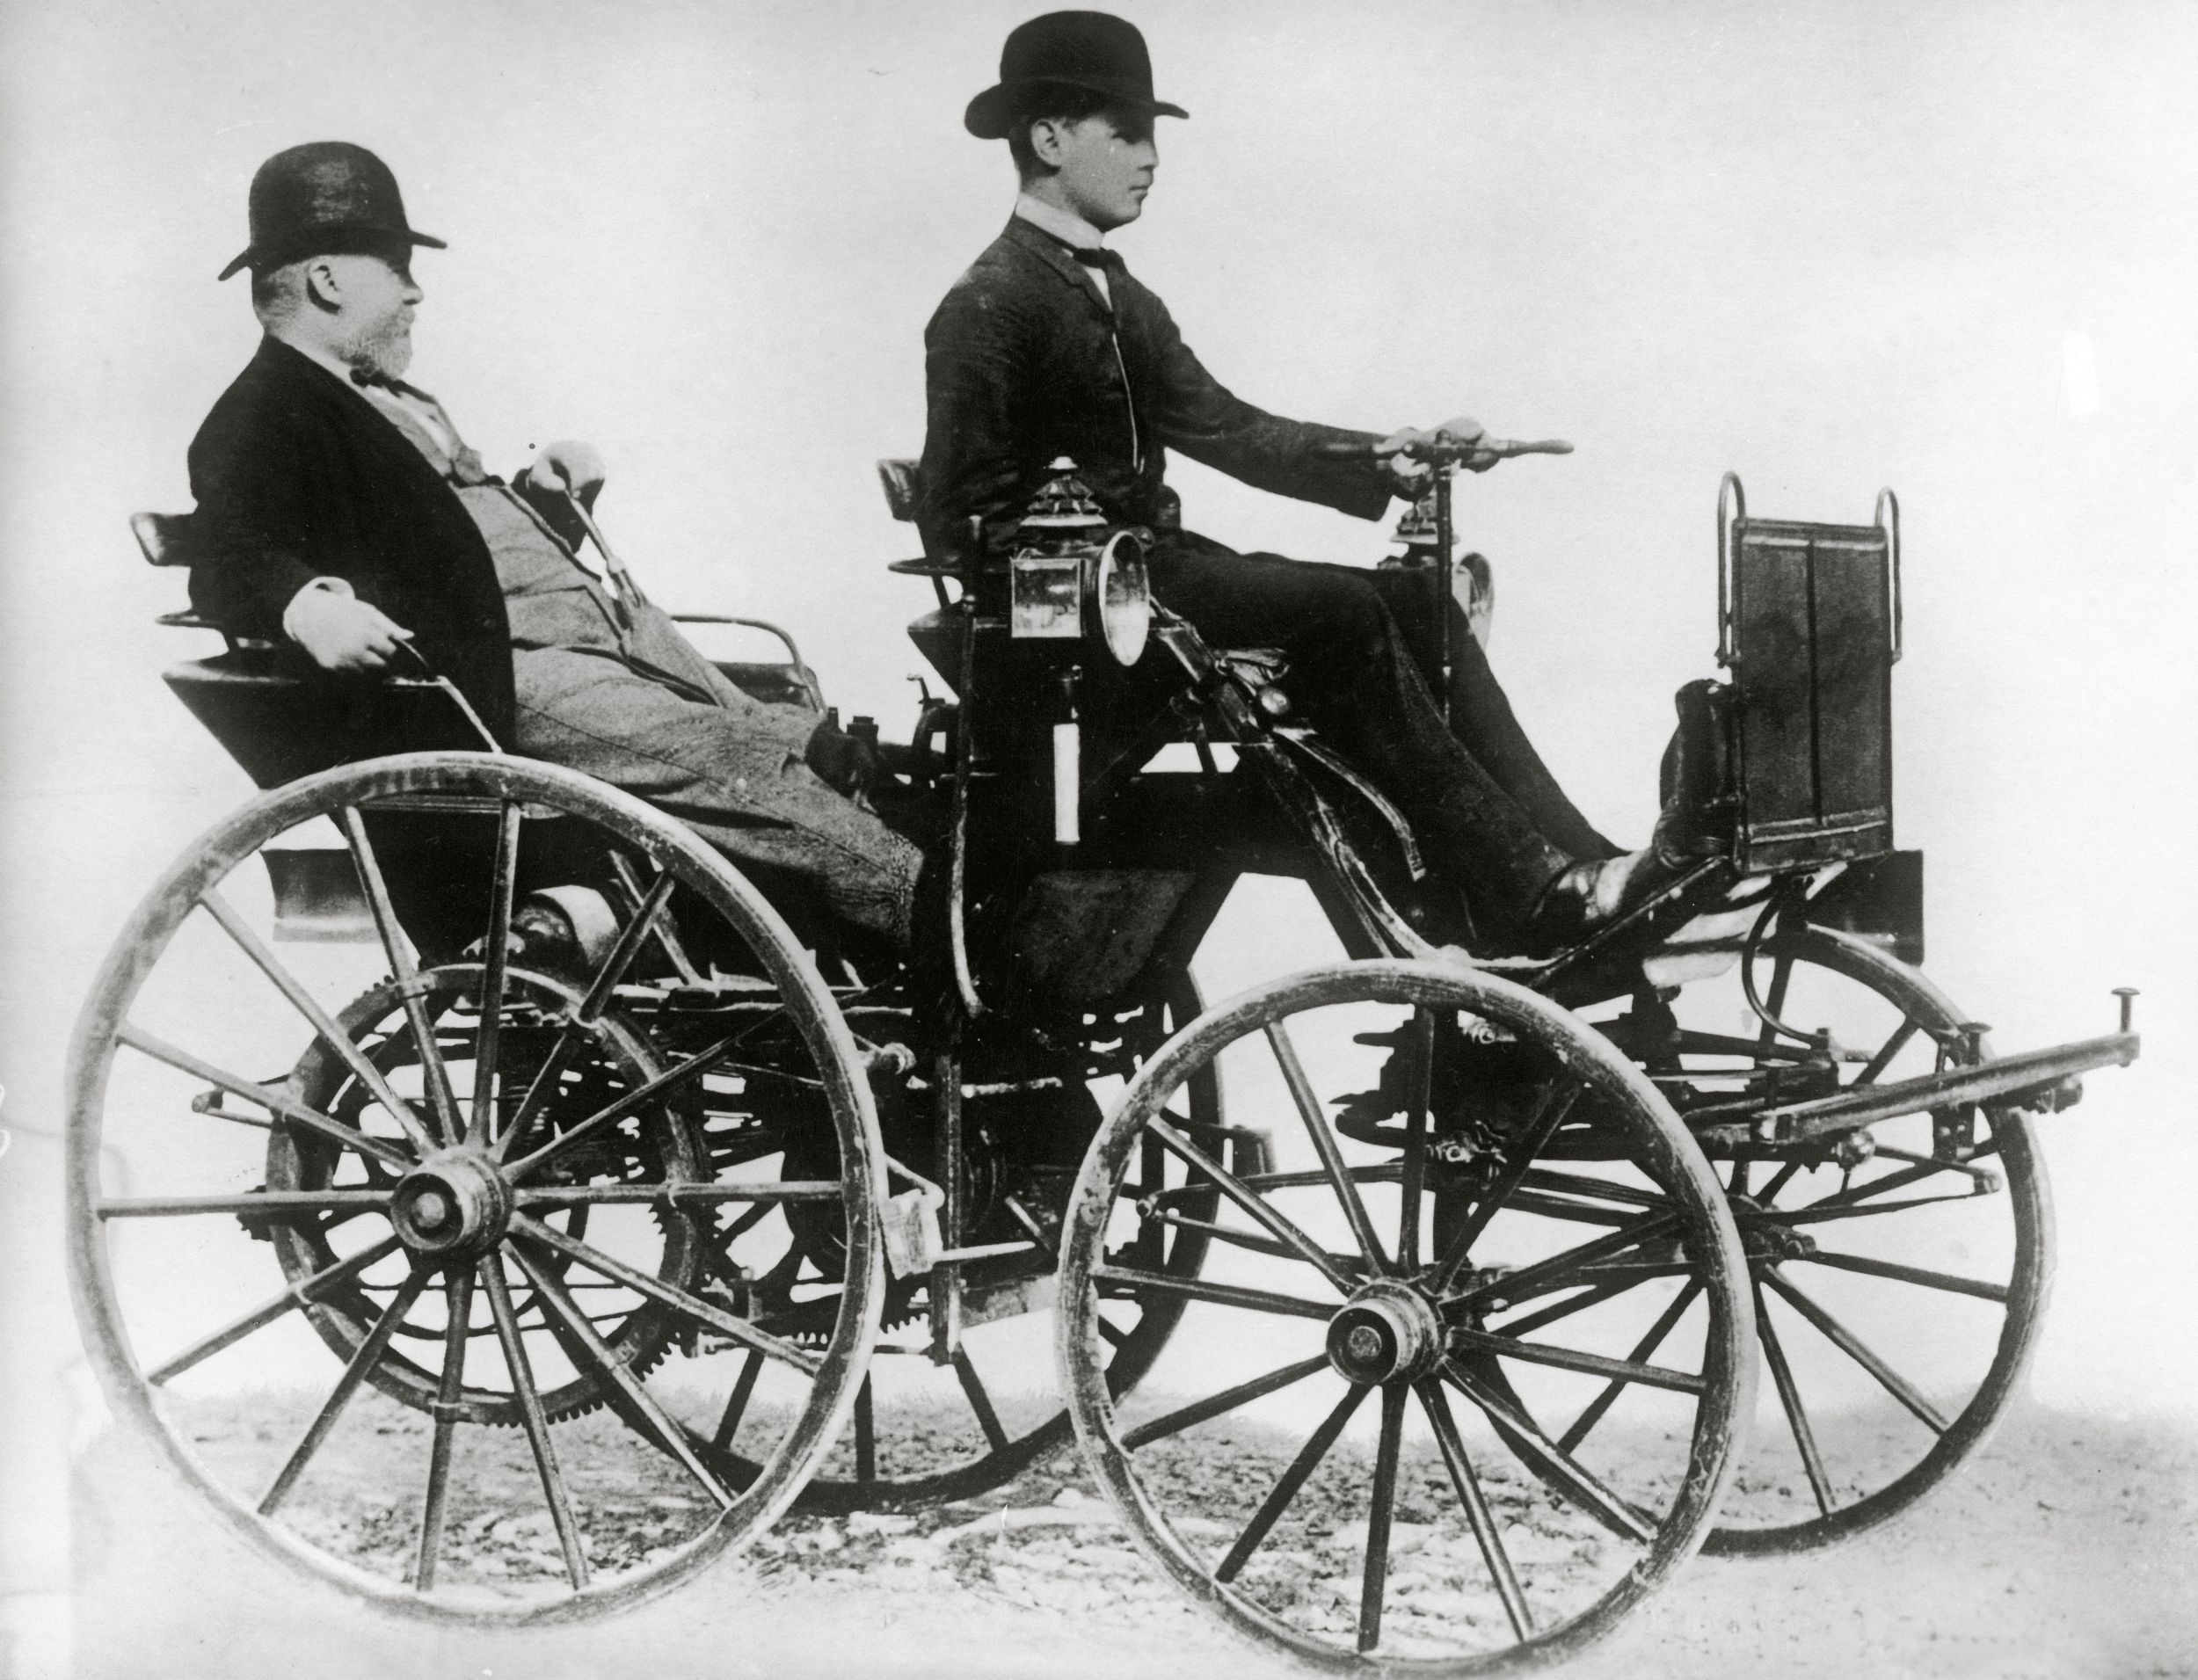 The Story of Automobile Inventor Gottlieb Daimler